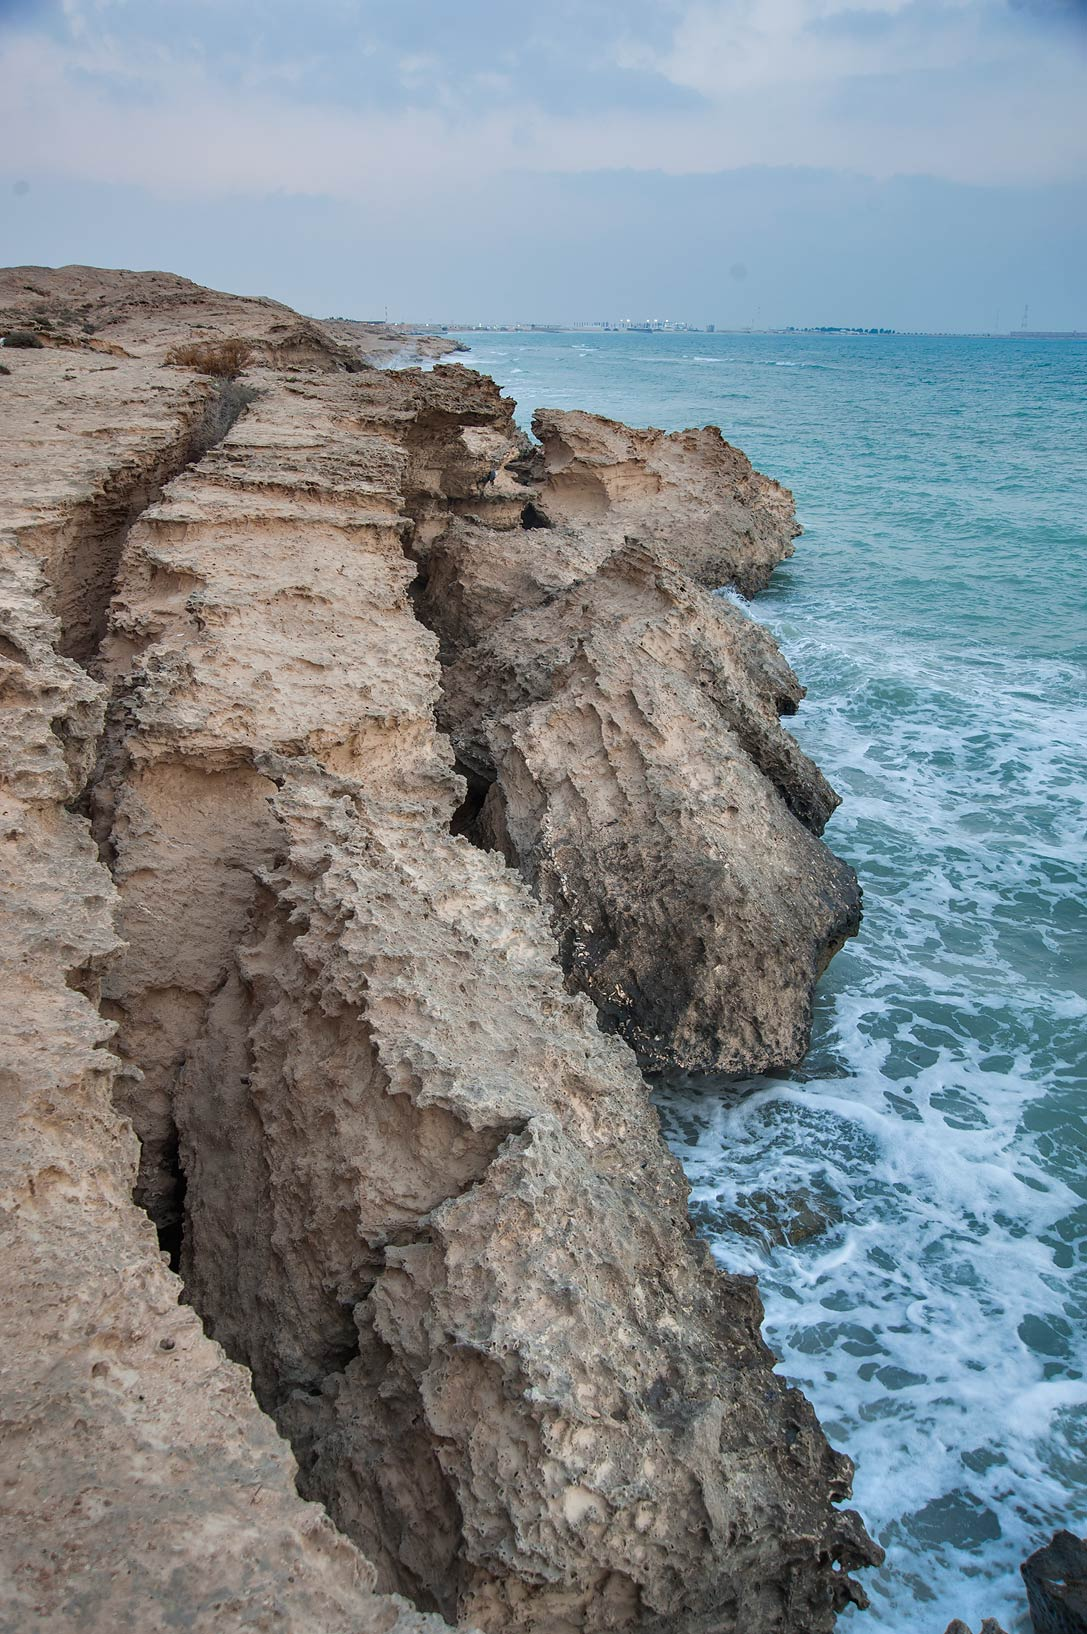 Beach cliffs of rocky ridge of Jebel Fuwairit. Northern Qatar